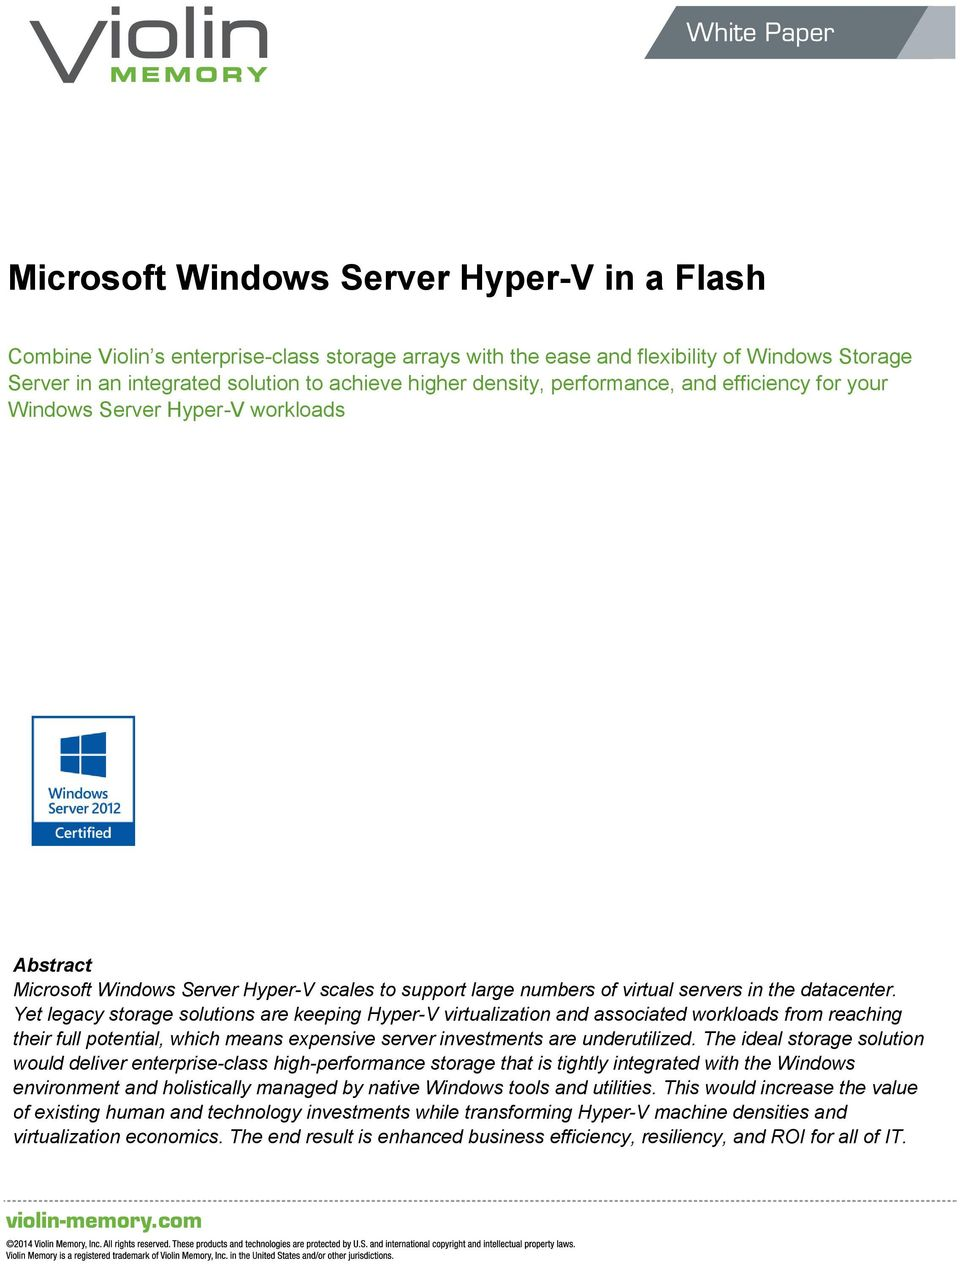 Yet legacy storage solutions are keeping Hyper-V virtualization and associated workloads from reaching their full potential, which means expensive server investments are underutilized.